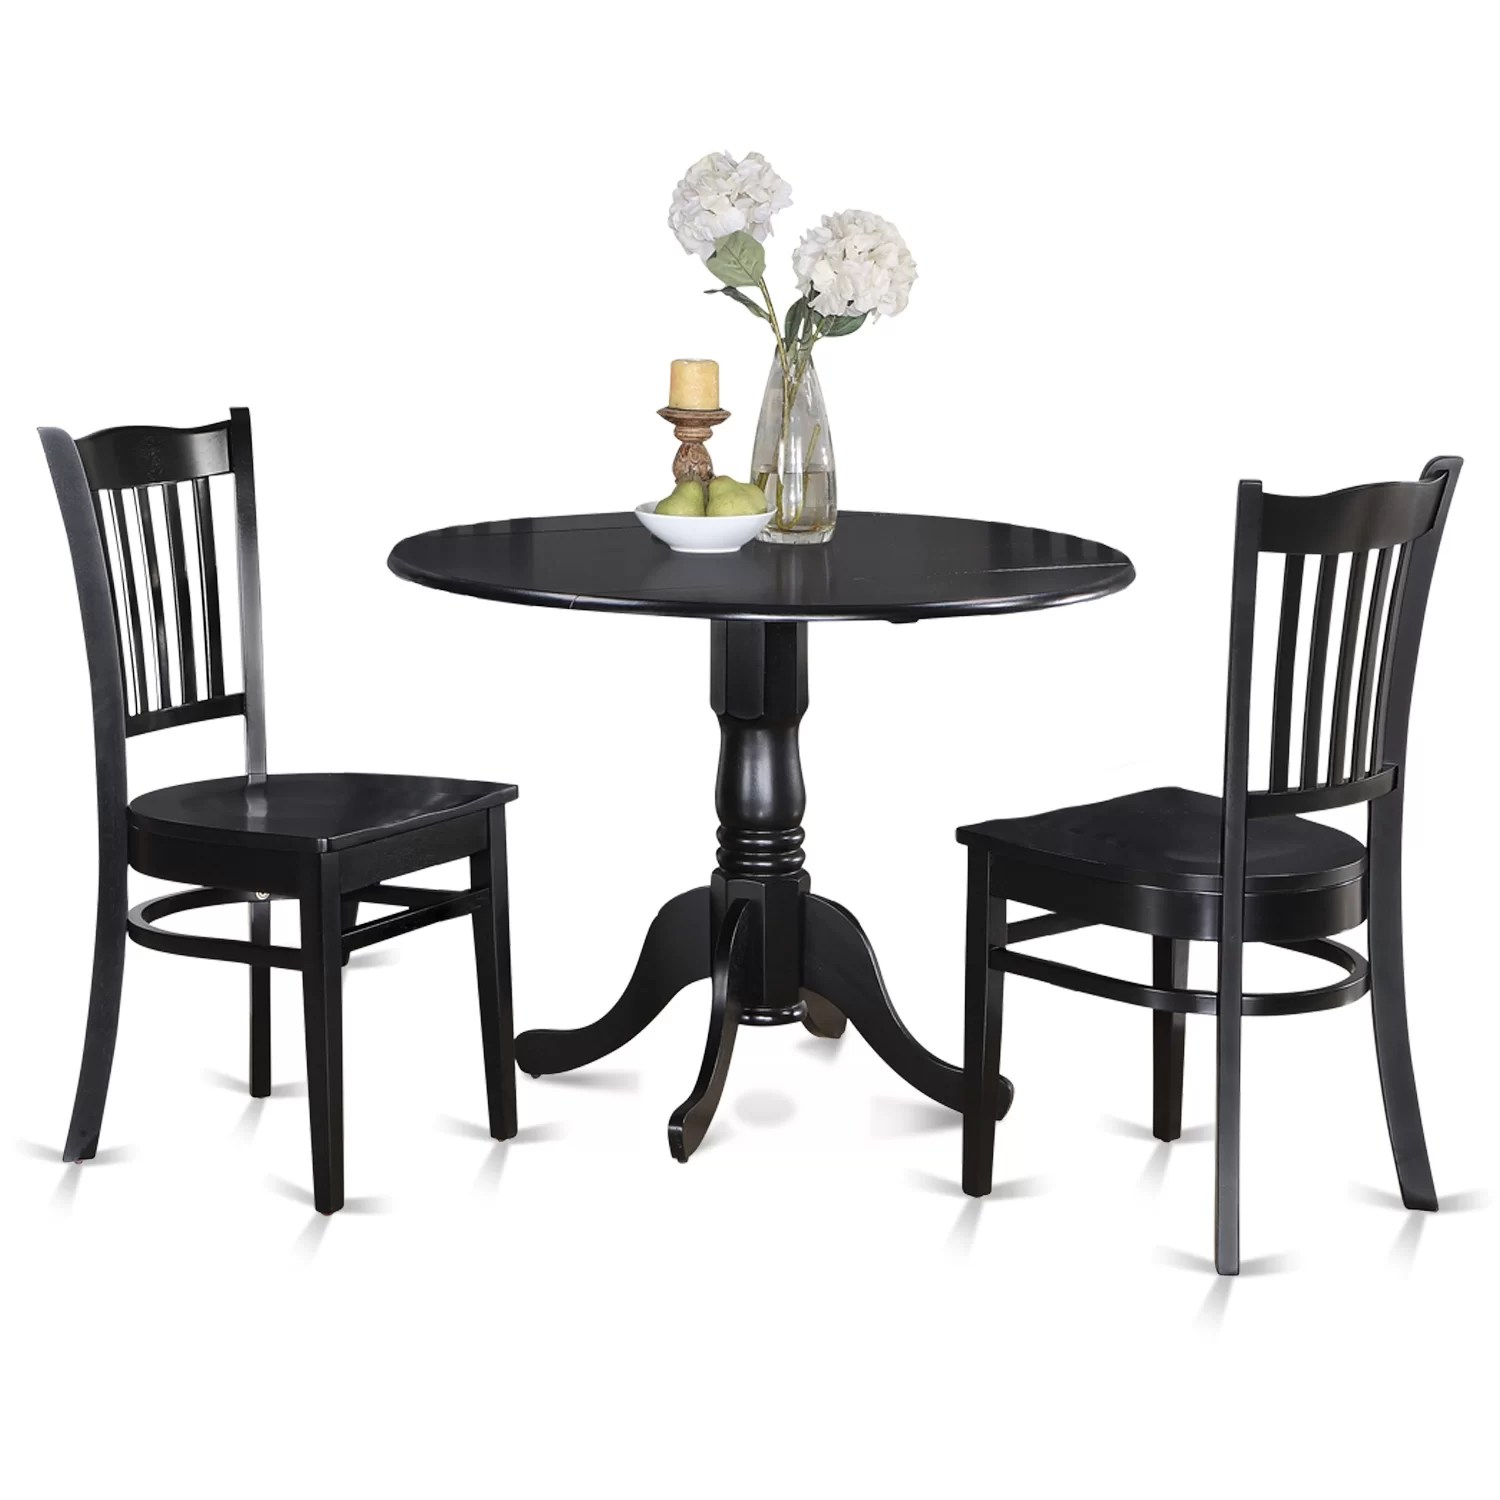 Small Kitchen Table With 2 Chairs Wooden Importers Dublin 3 Piece Dining Set And Reviews Wayfair